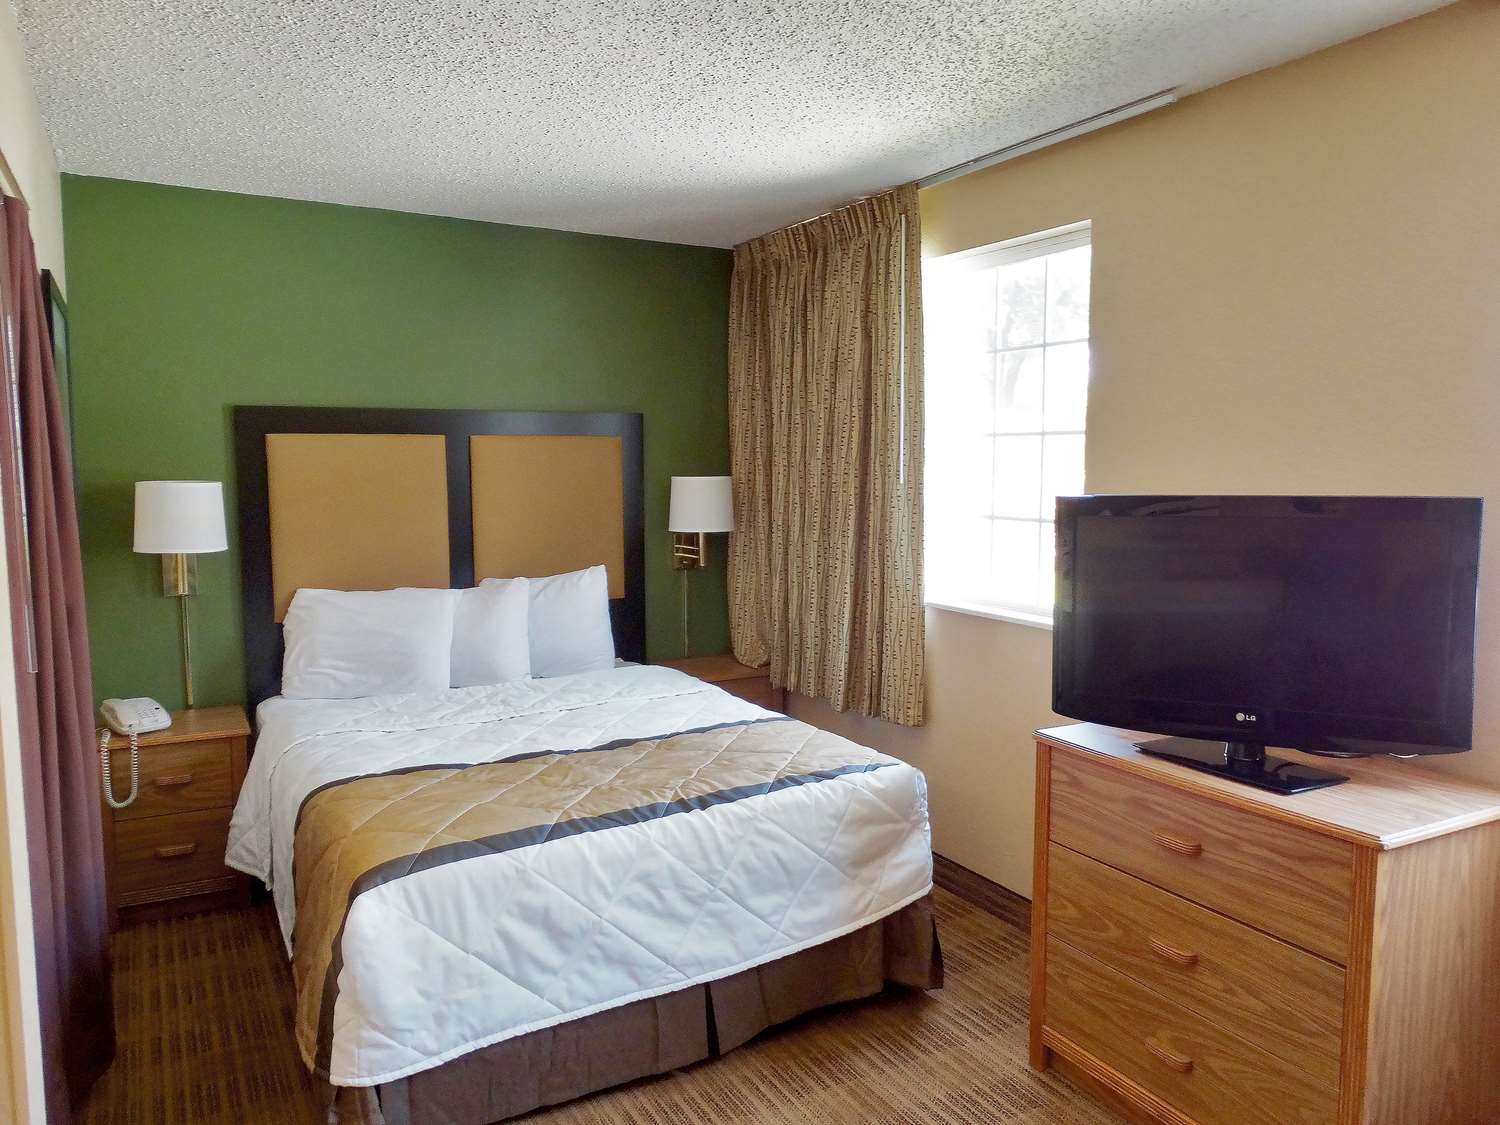 Extended Stay America Hotel Route 9 Fishkill, NY - See Discounts